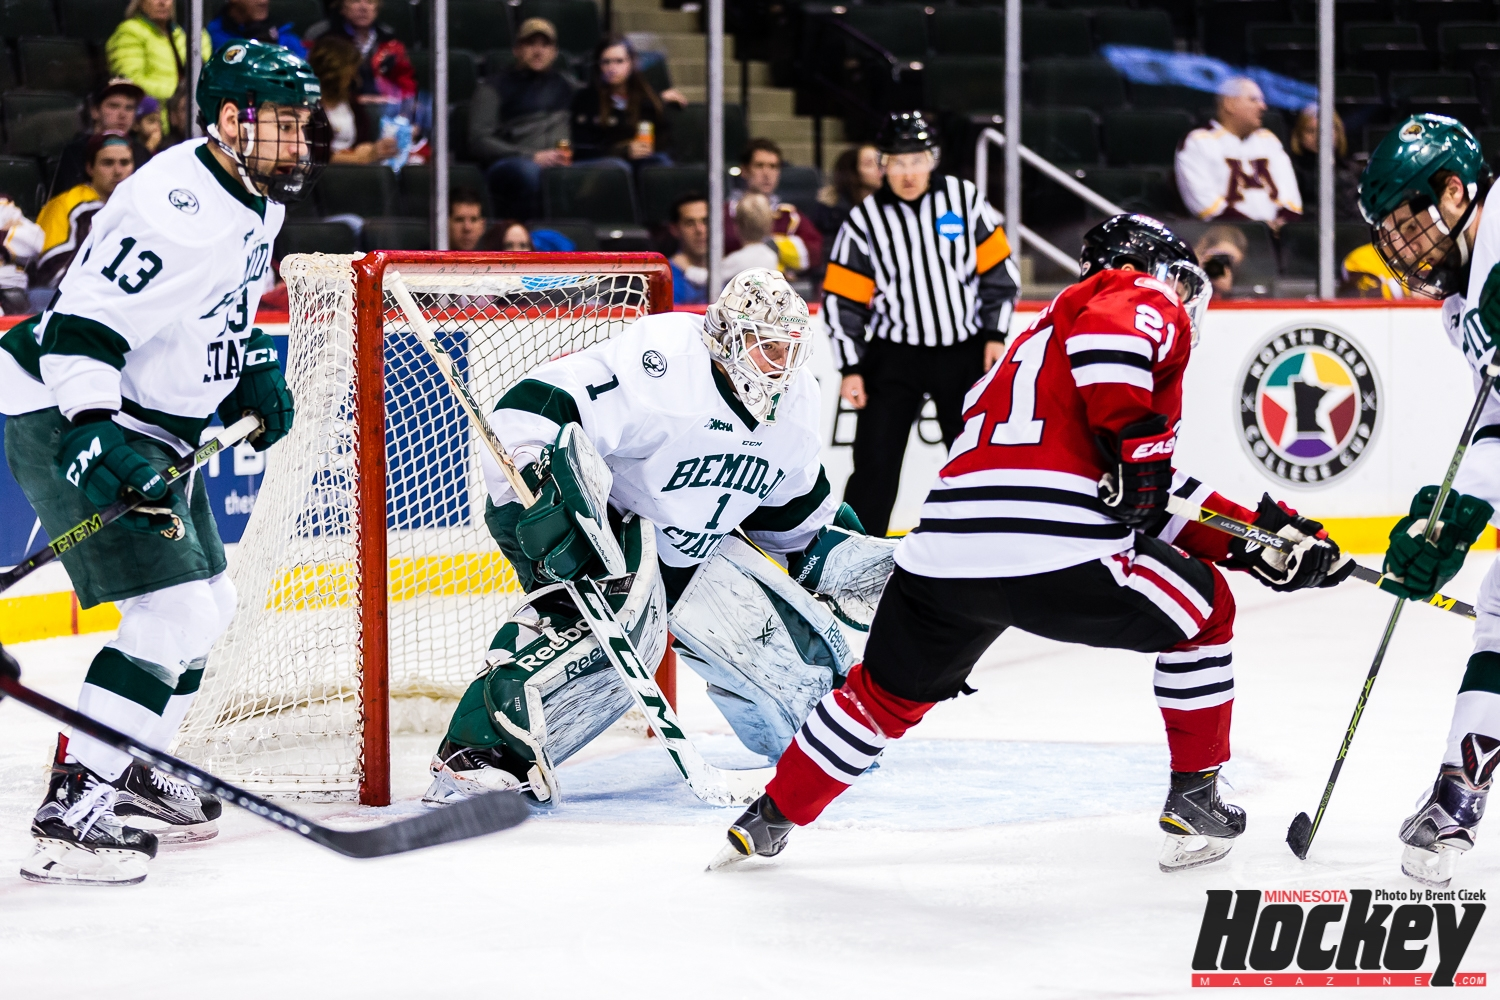 WCHA: Bemidji State Season Preview